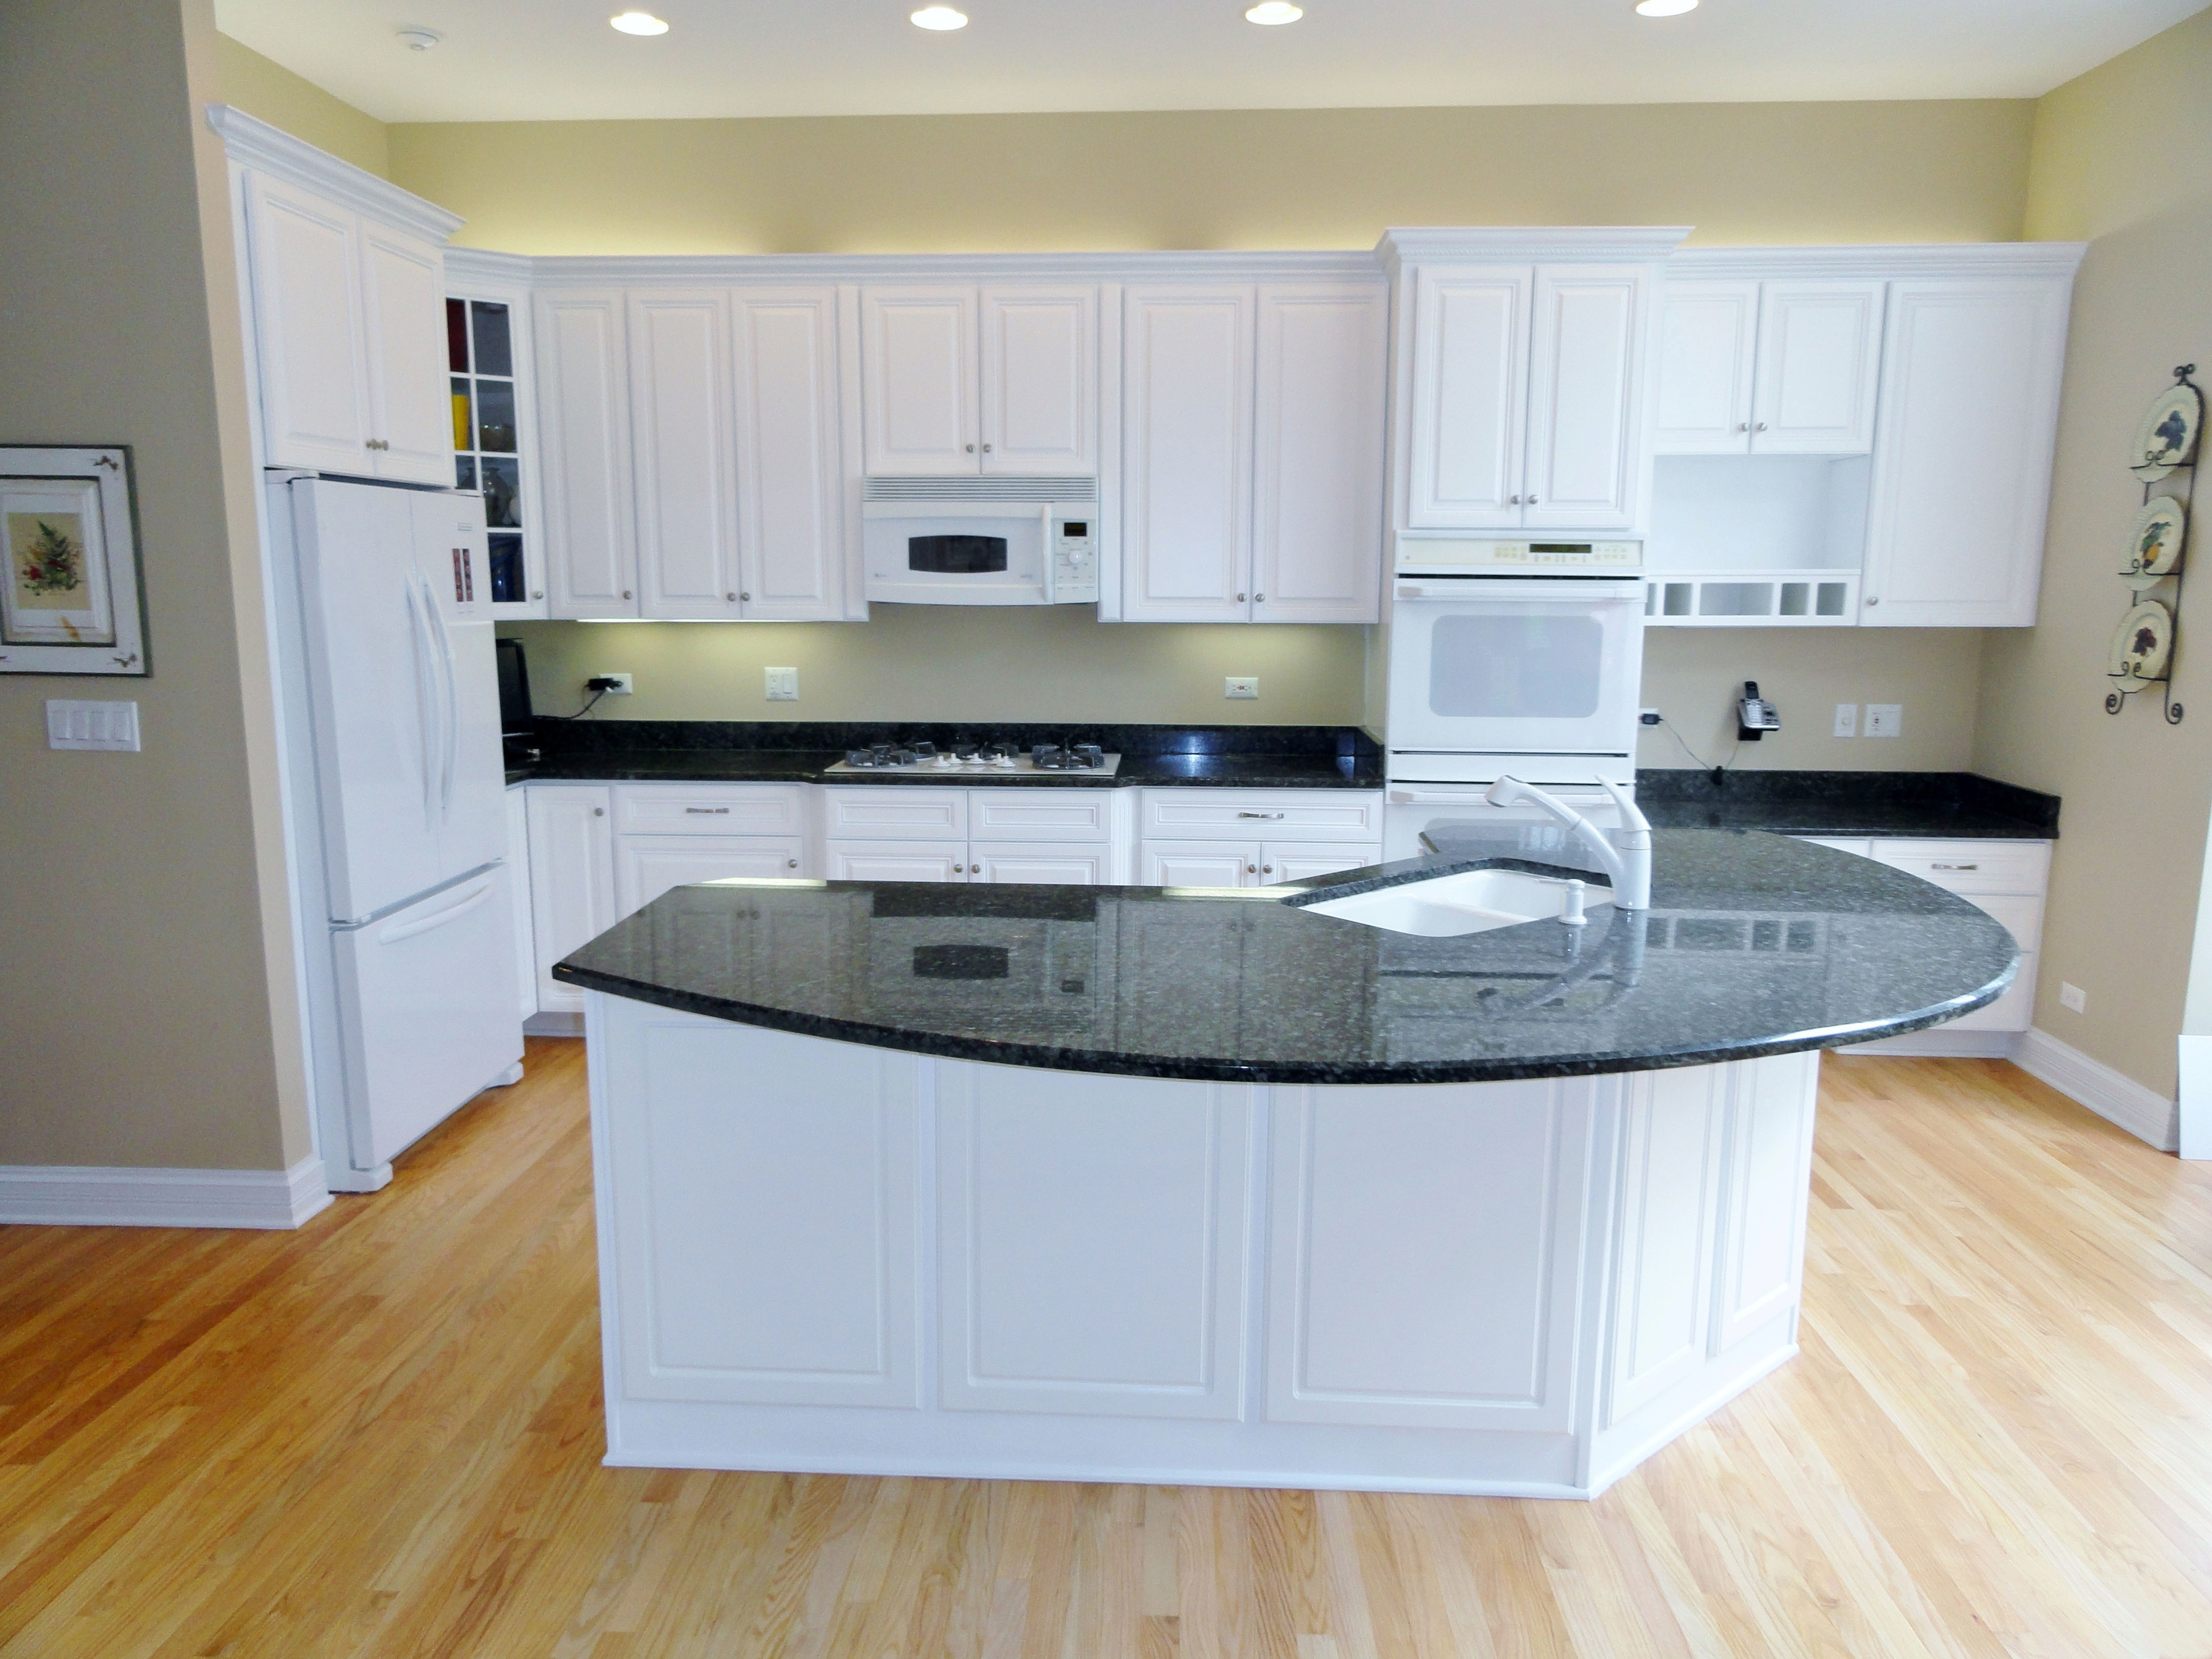 Permalink to Kitchen Cabinet Refacing Estimate